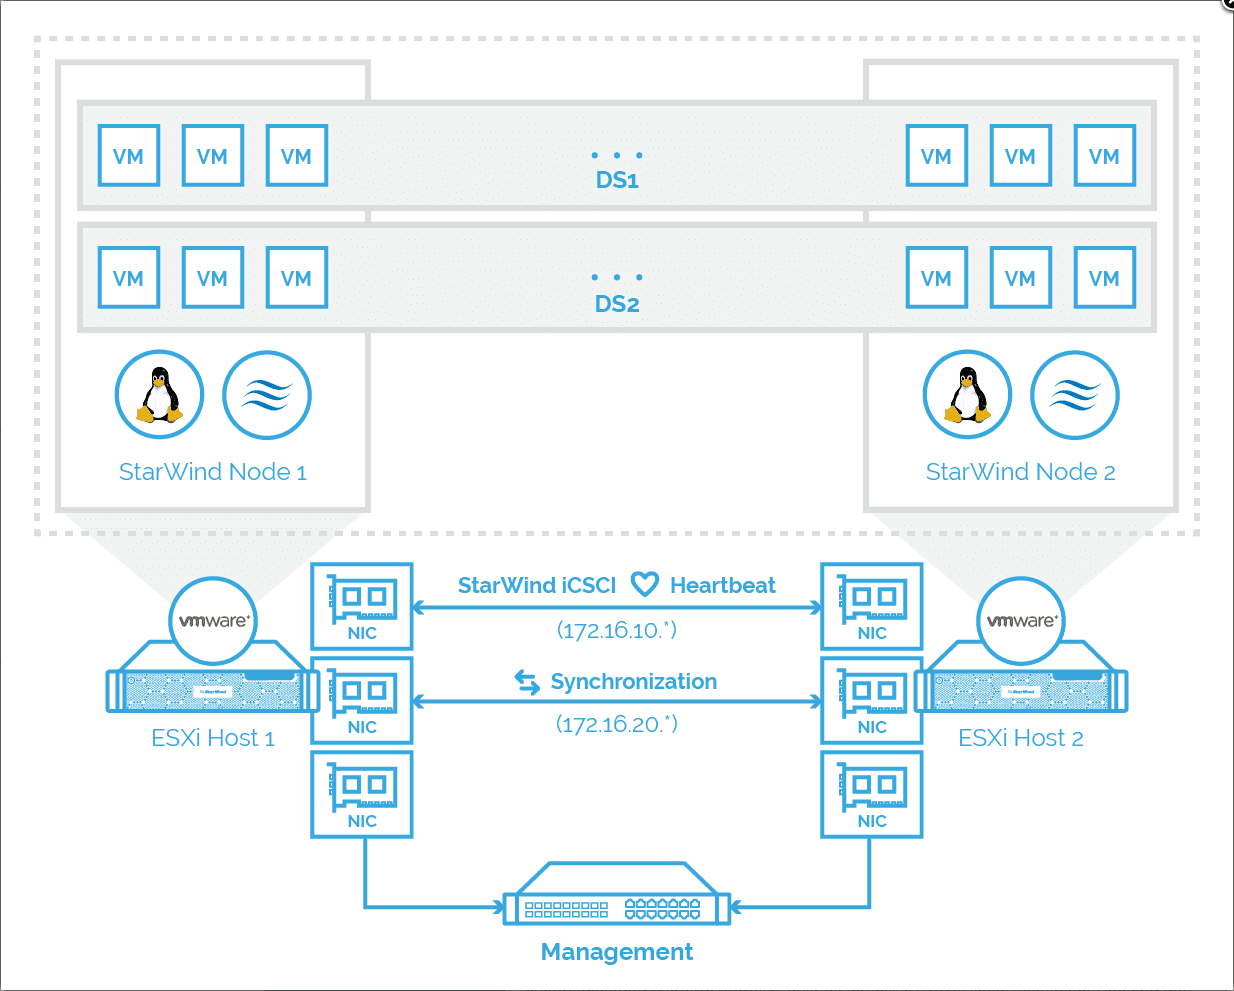 StarWind-VSAN-high-level-architectural-overview